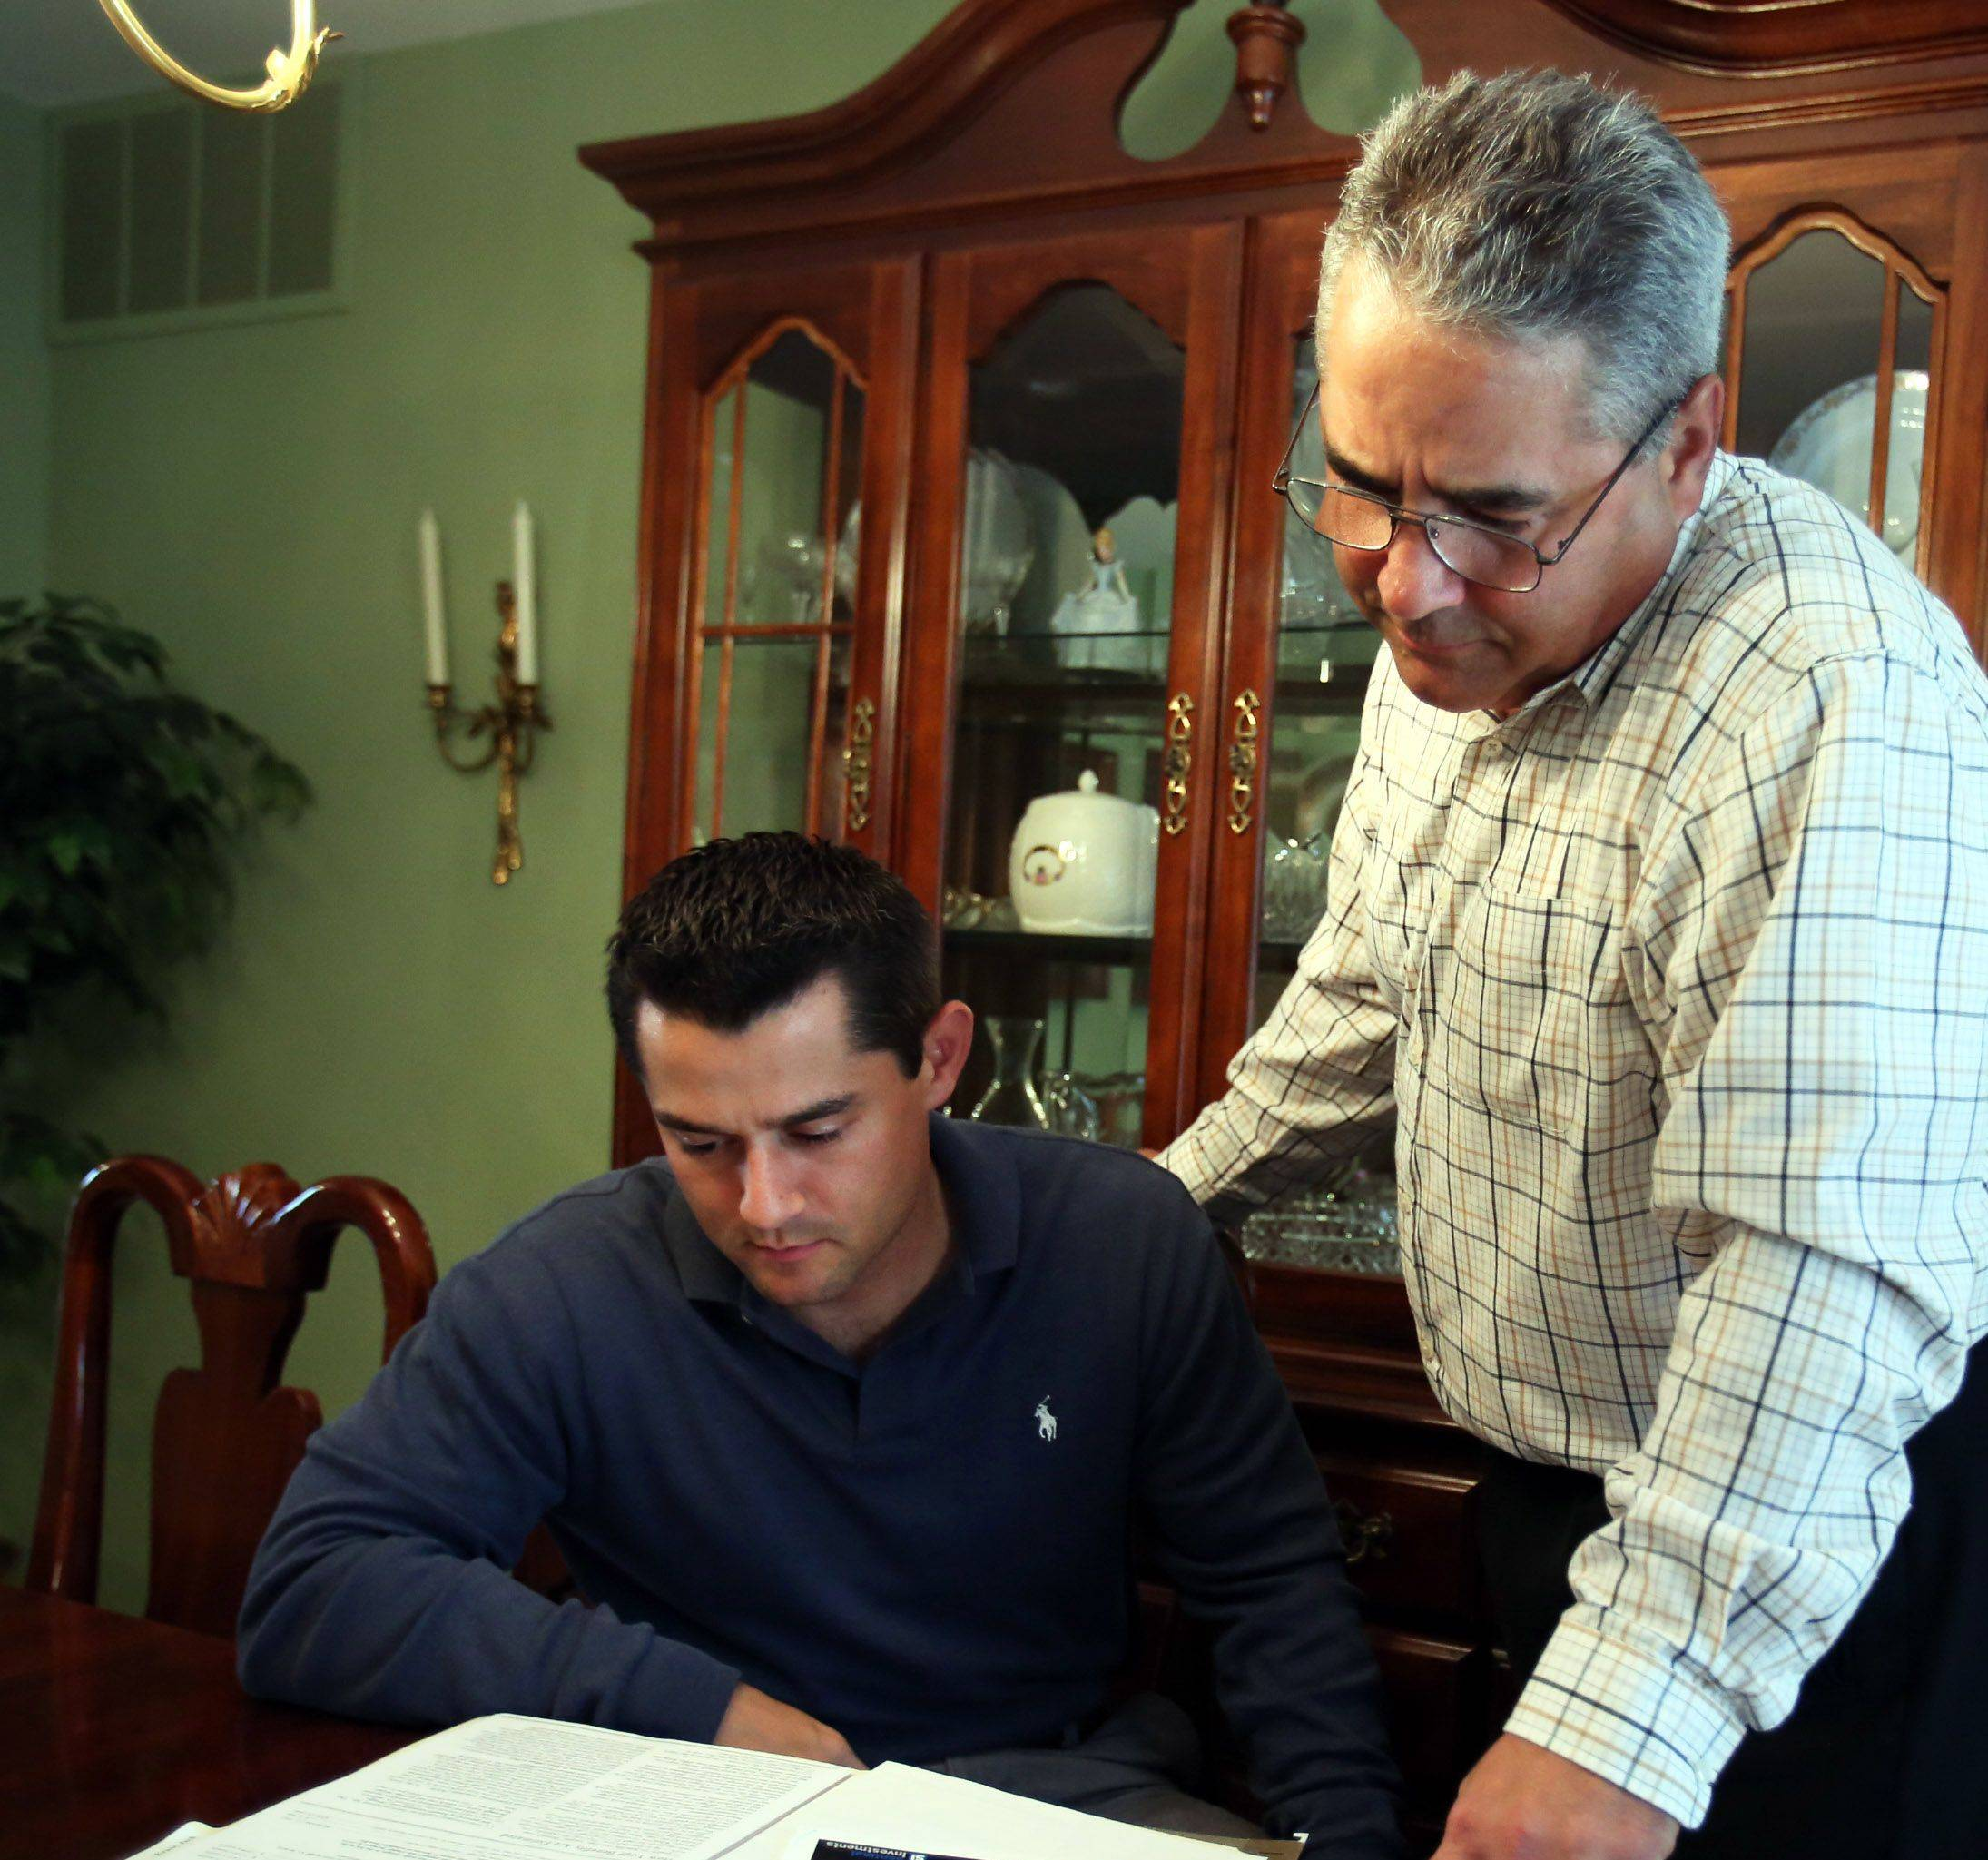 Financial planner Peter Gennuso, right, with his son his son Matthew Gennuso at Peter's home in Schaumburg.